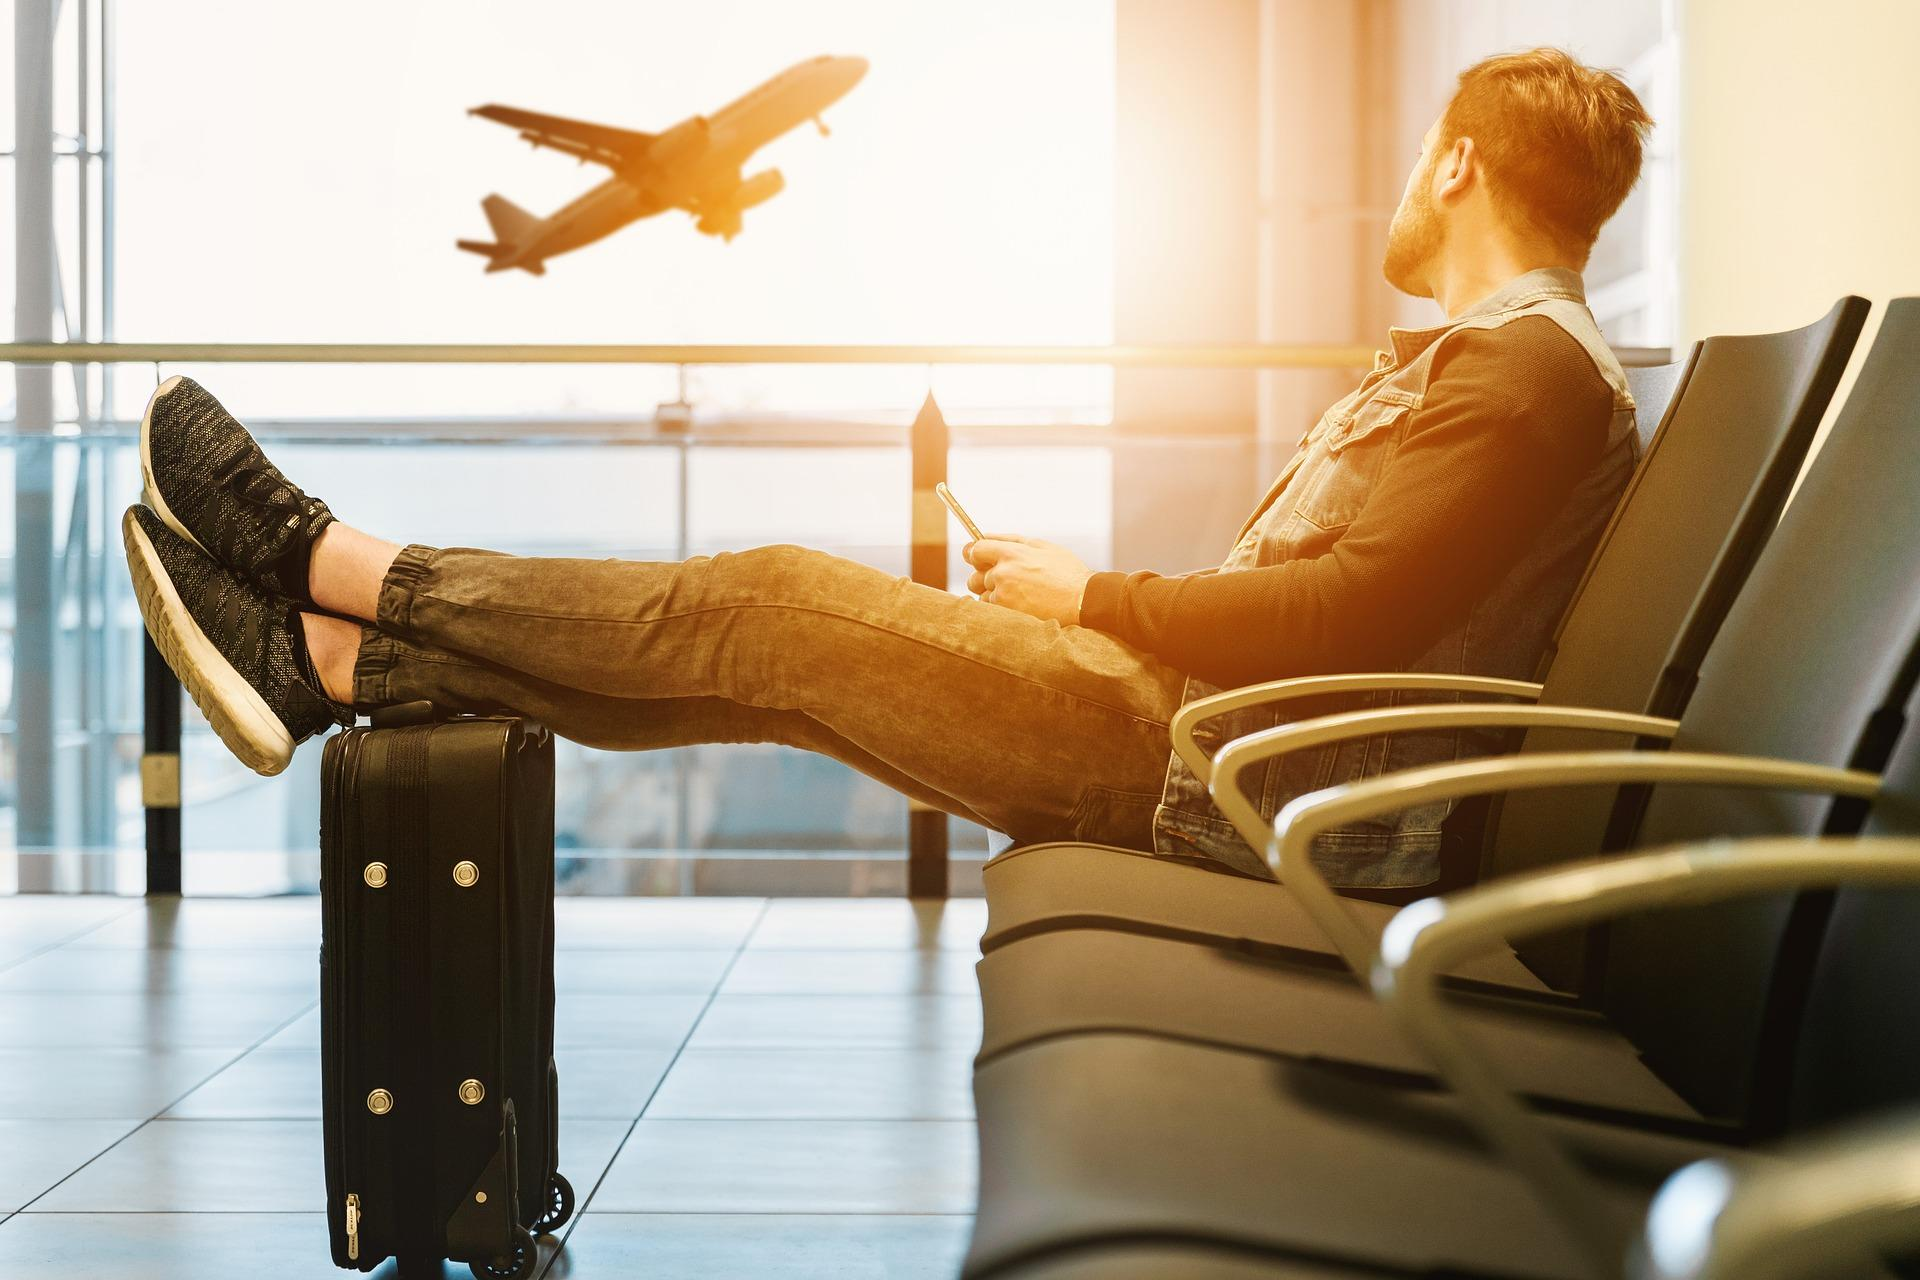 10 Tricks for Snagging Super Discounted Airfare